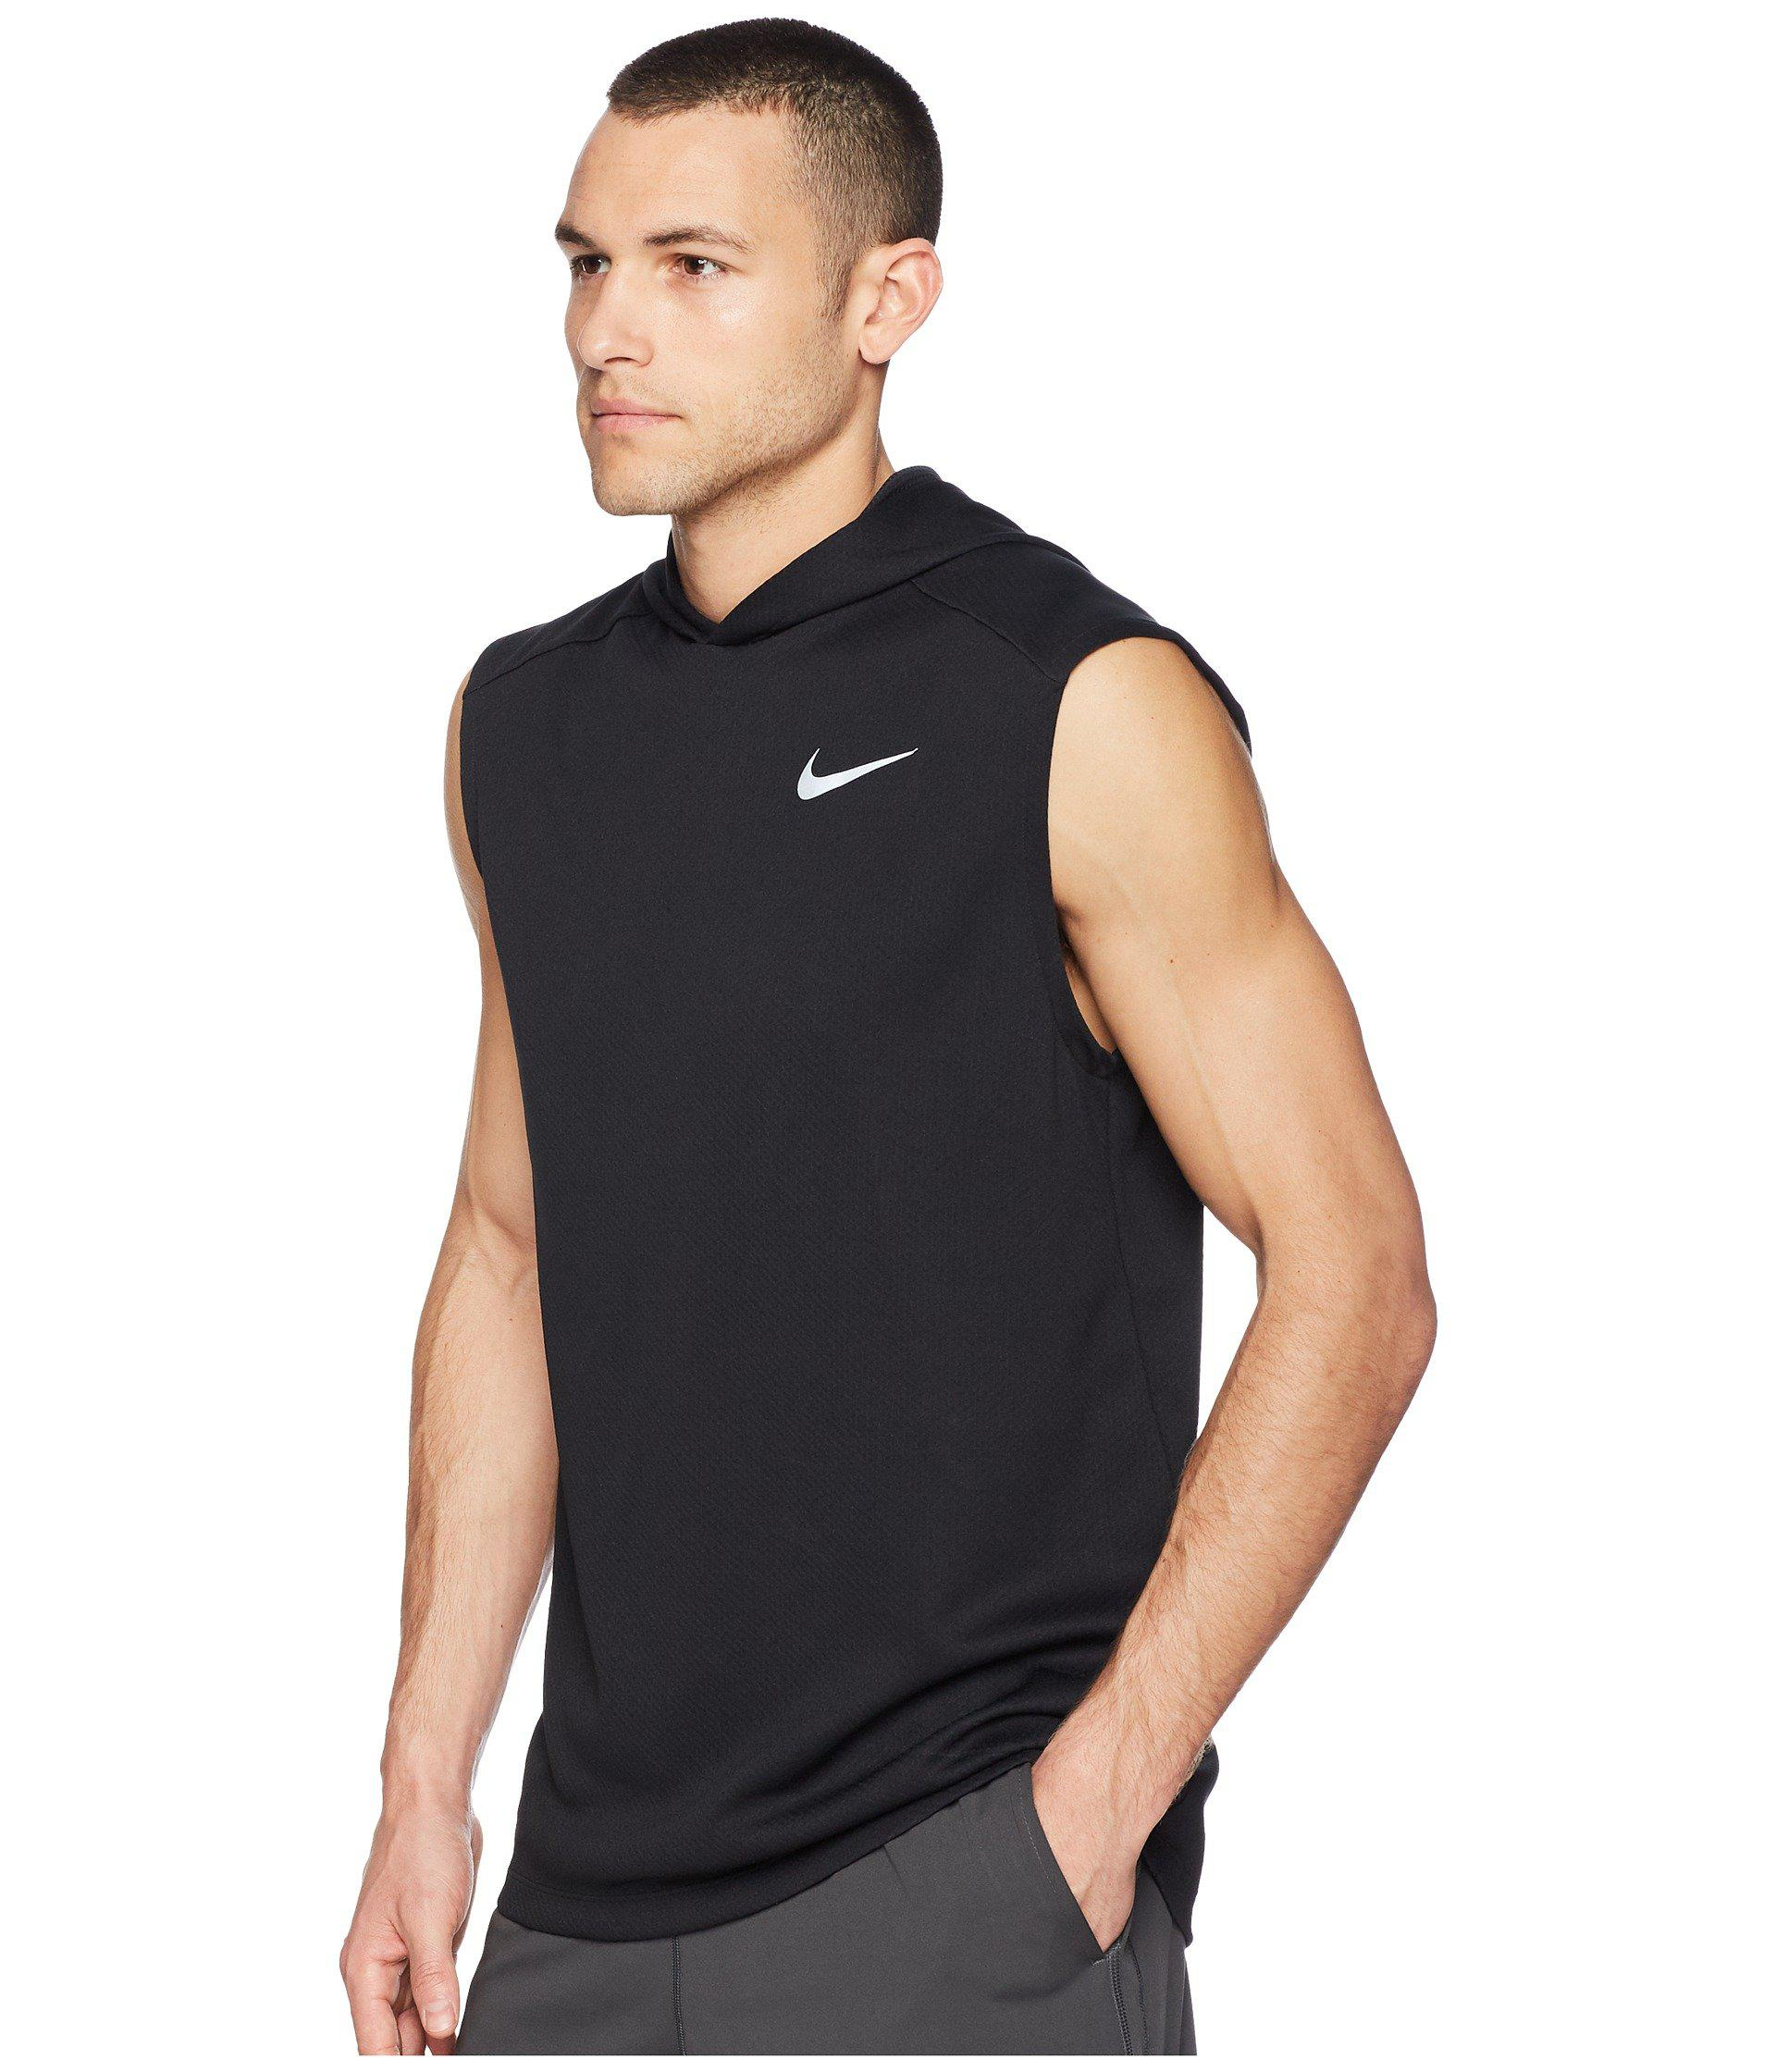 82f3a455 Nike Dry Top Sleeveless Running Hoodie in Black for Men - Lyst